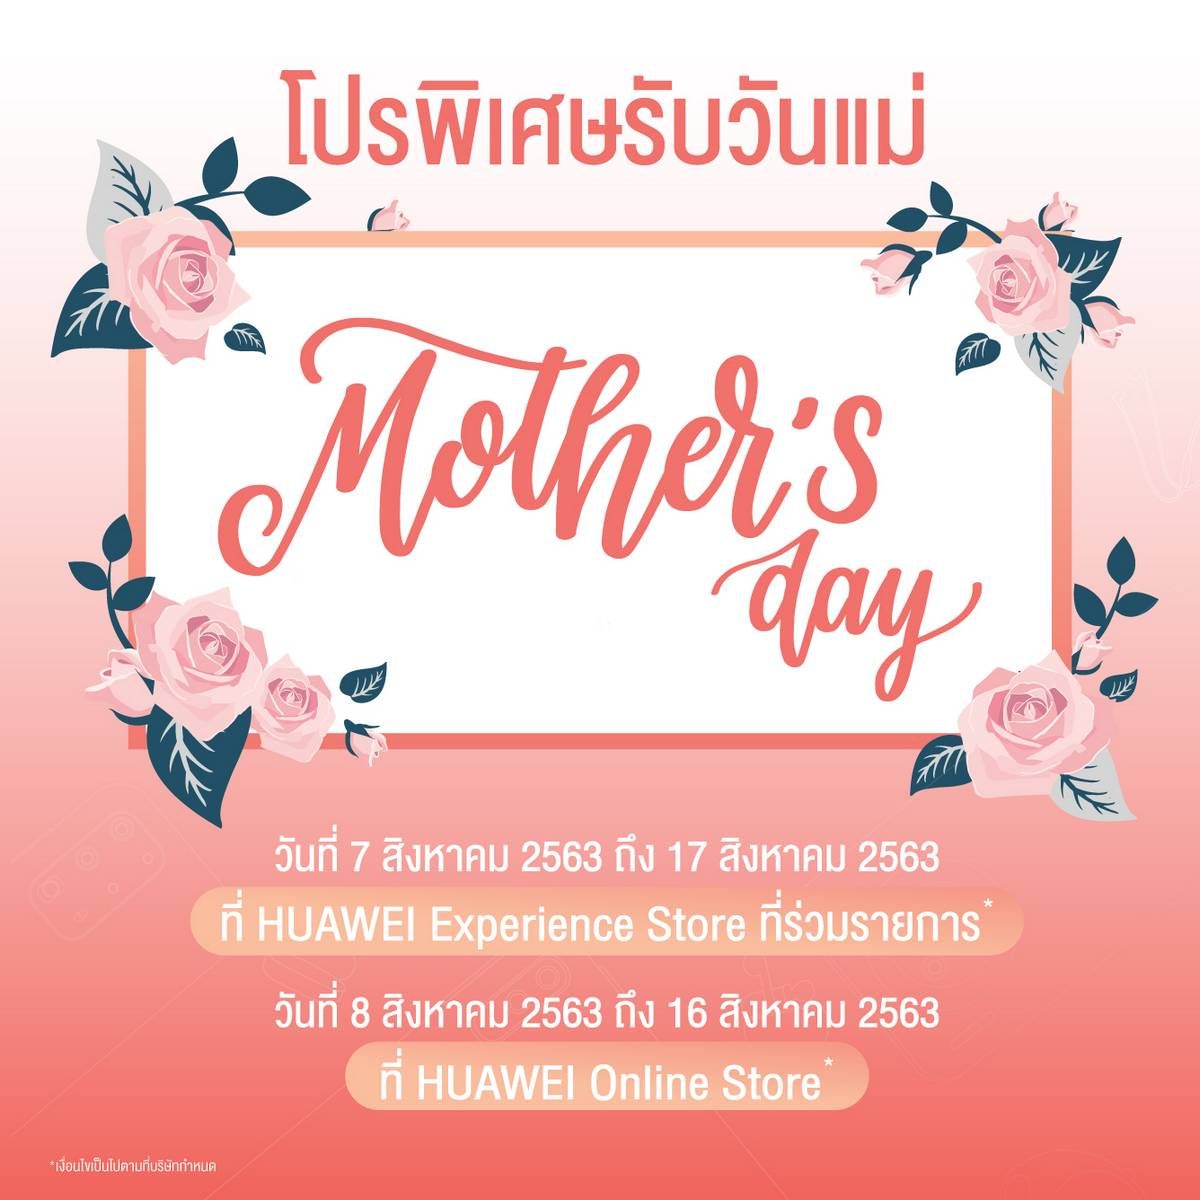 HUAWEI x Mother's Day